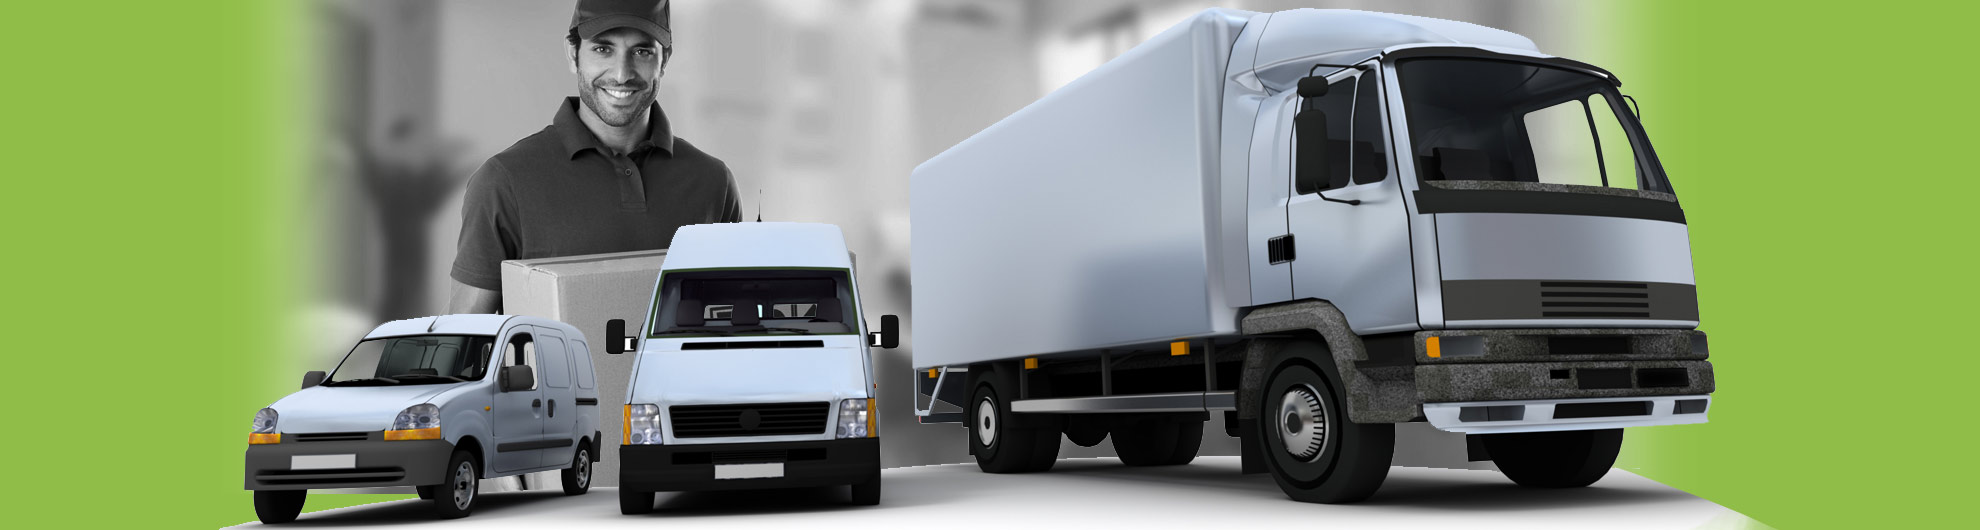 Quanwan  International Movers - Shipping Companies